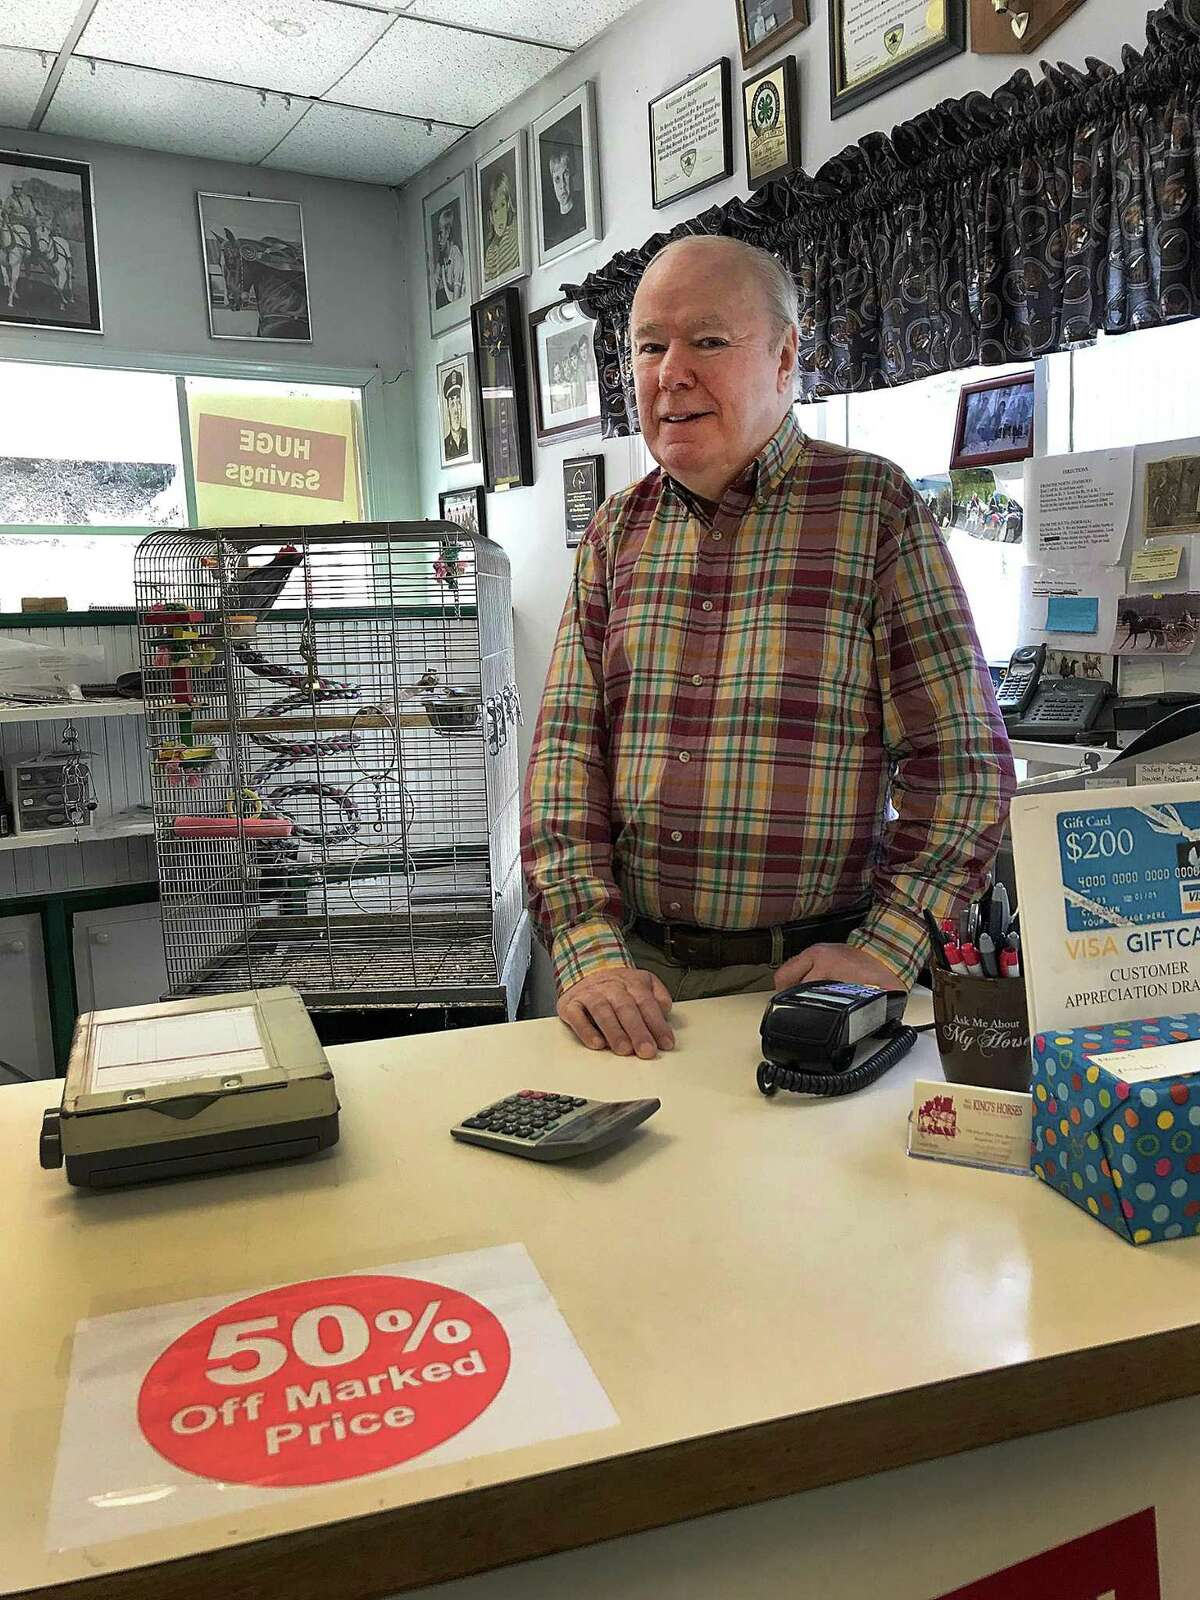 Dan Reilly stands behind the counter at All The Kings's Horses on Ethan Allen Highway in Ridgefield, Conn., on Tuesday, May 8, 2018. Reilly is closing the shop for retirement after 44 years in business.